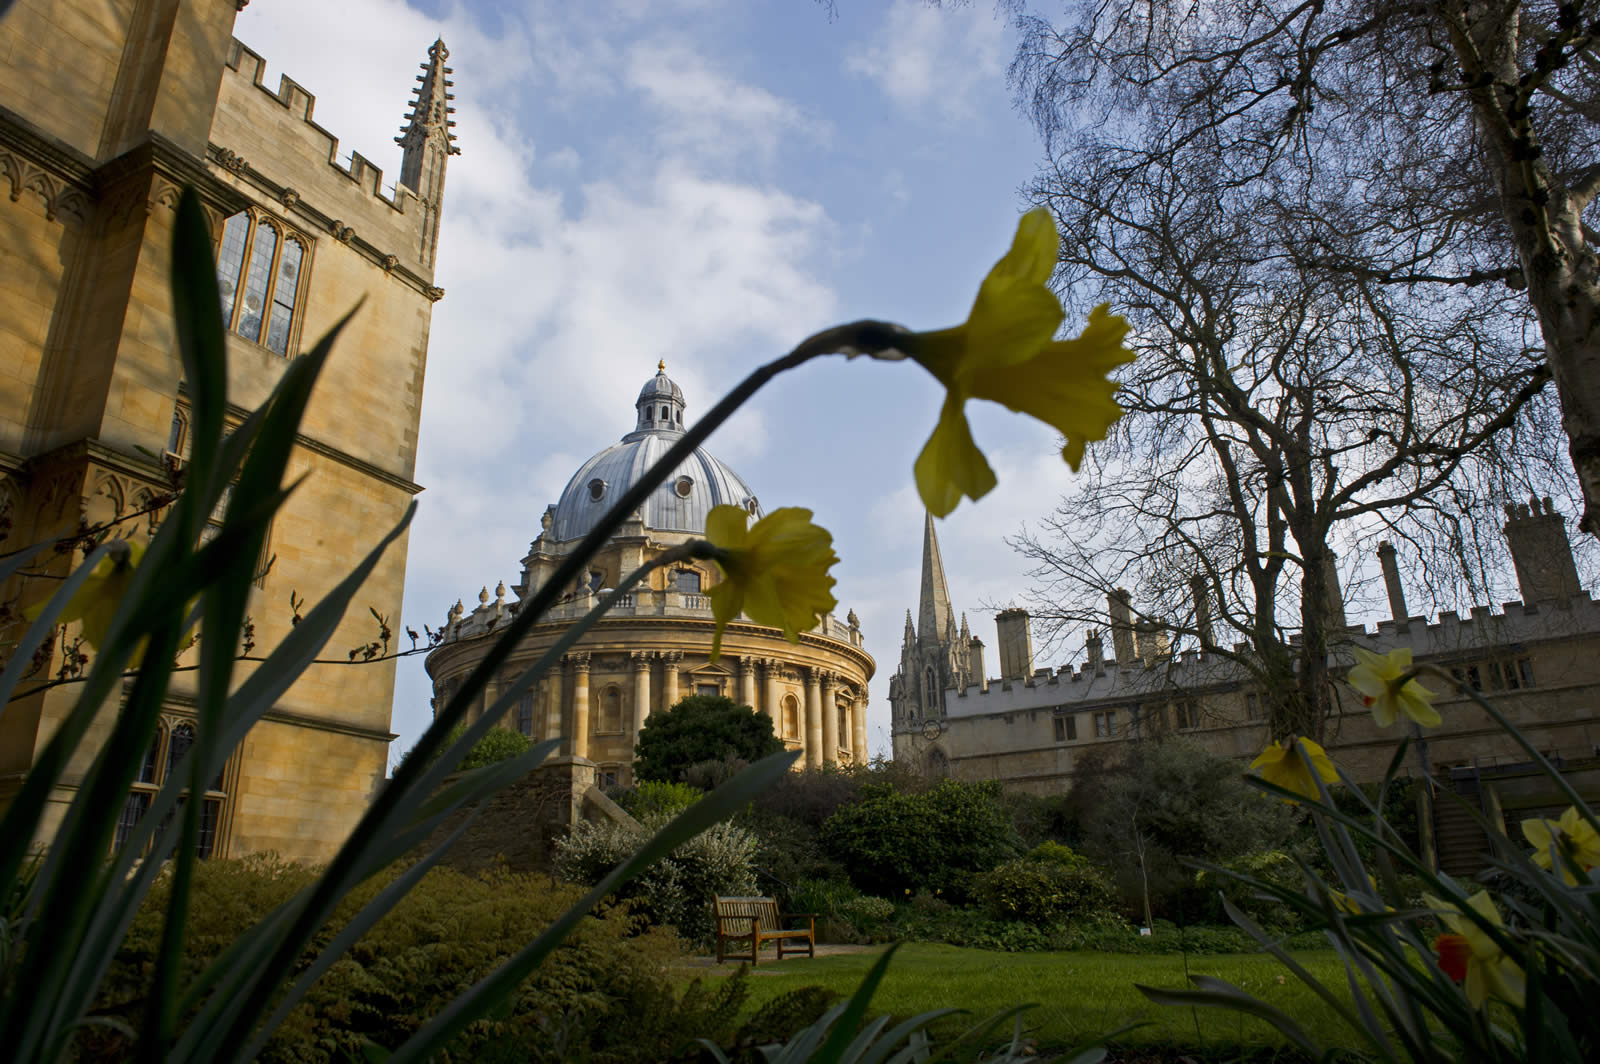 A view from Exeter College gardens with the Radcliffe Camera and the spire of the University Church of St Mary the Virgin in the centre, the Bodelian Library on the left and Brasenose College on the right.